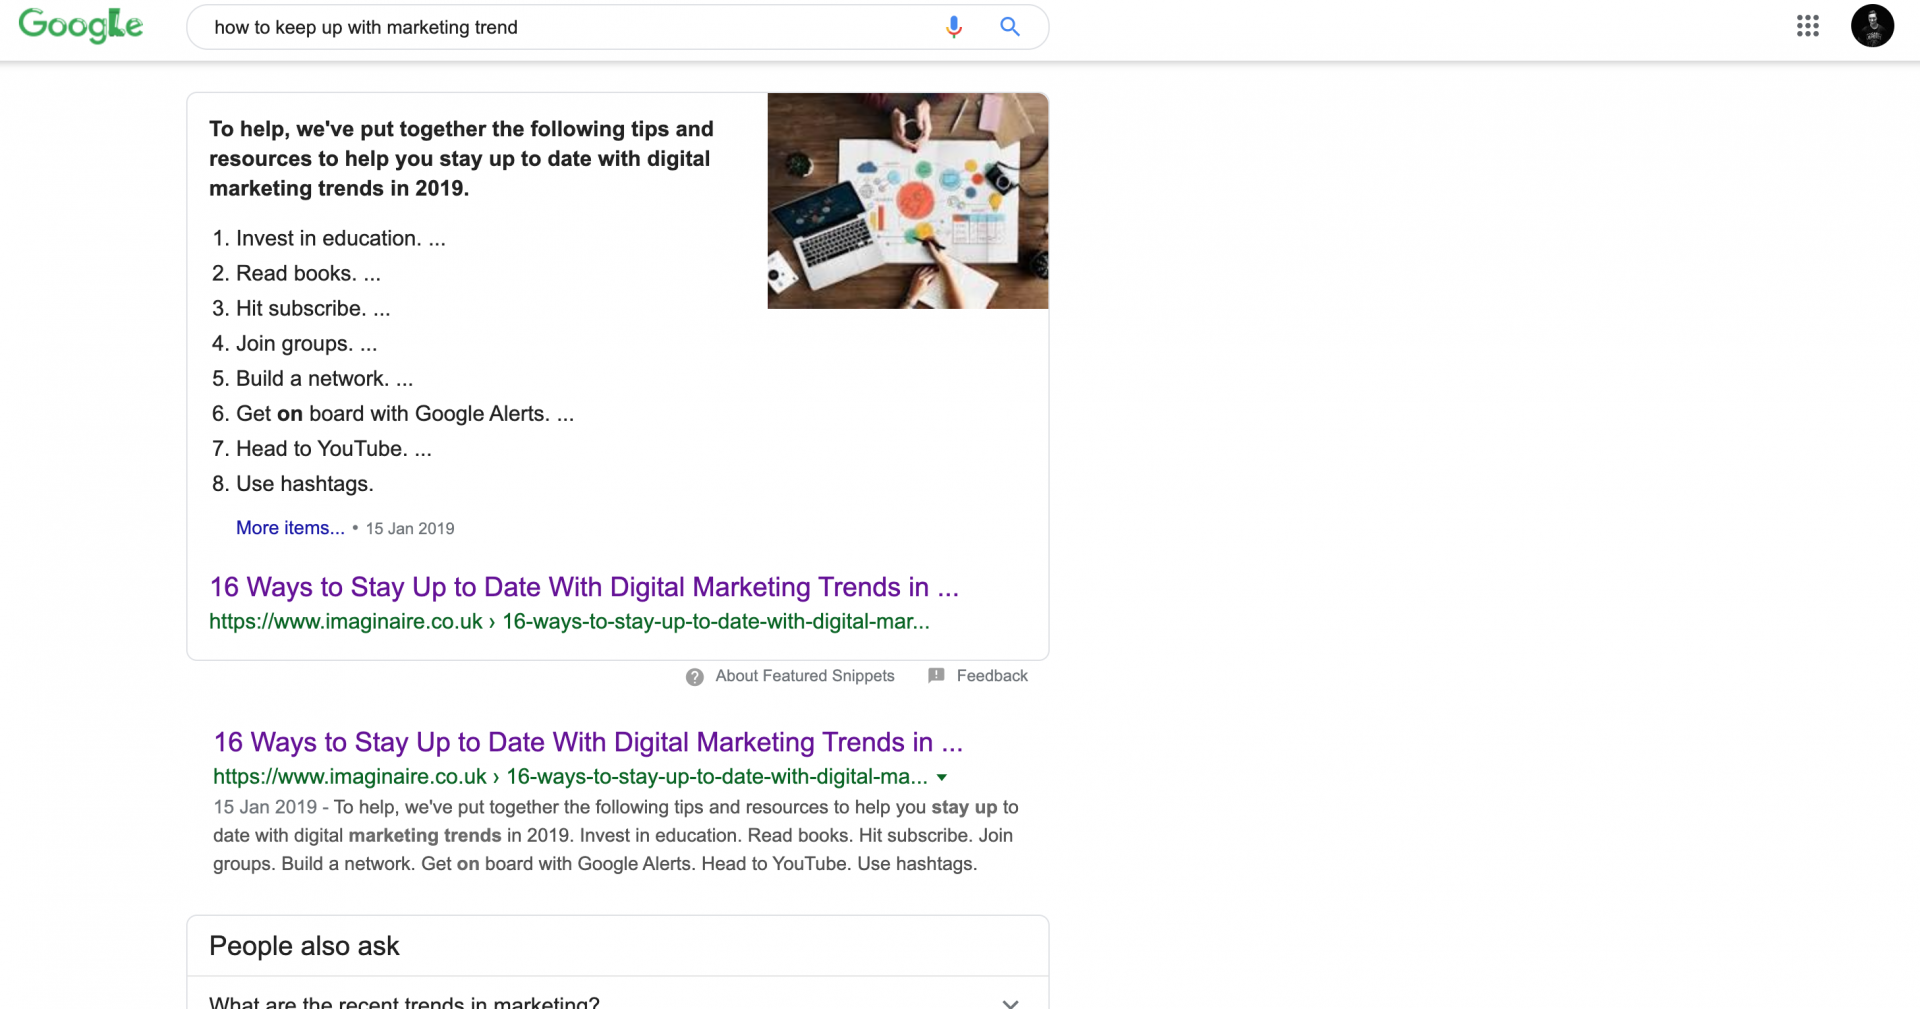 SERP Showing a Featured Snippet